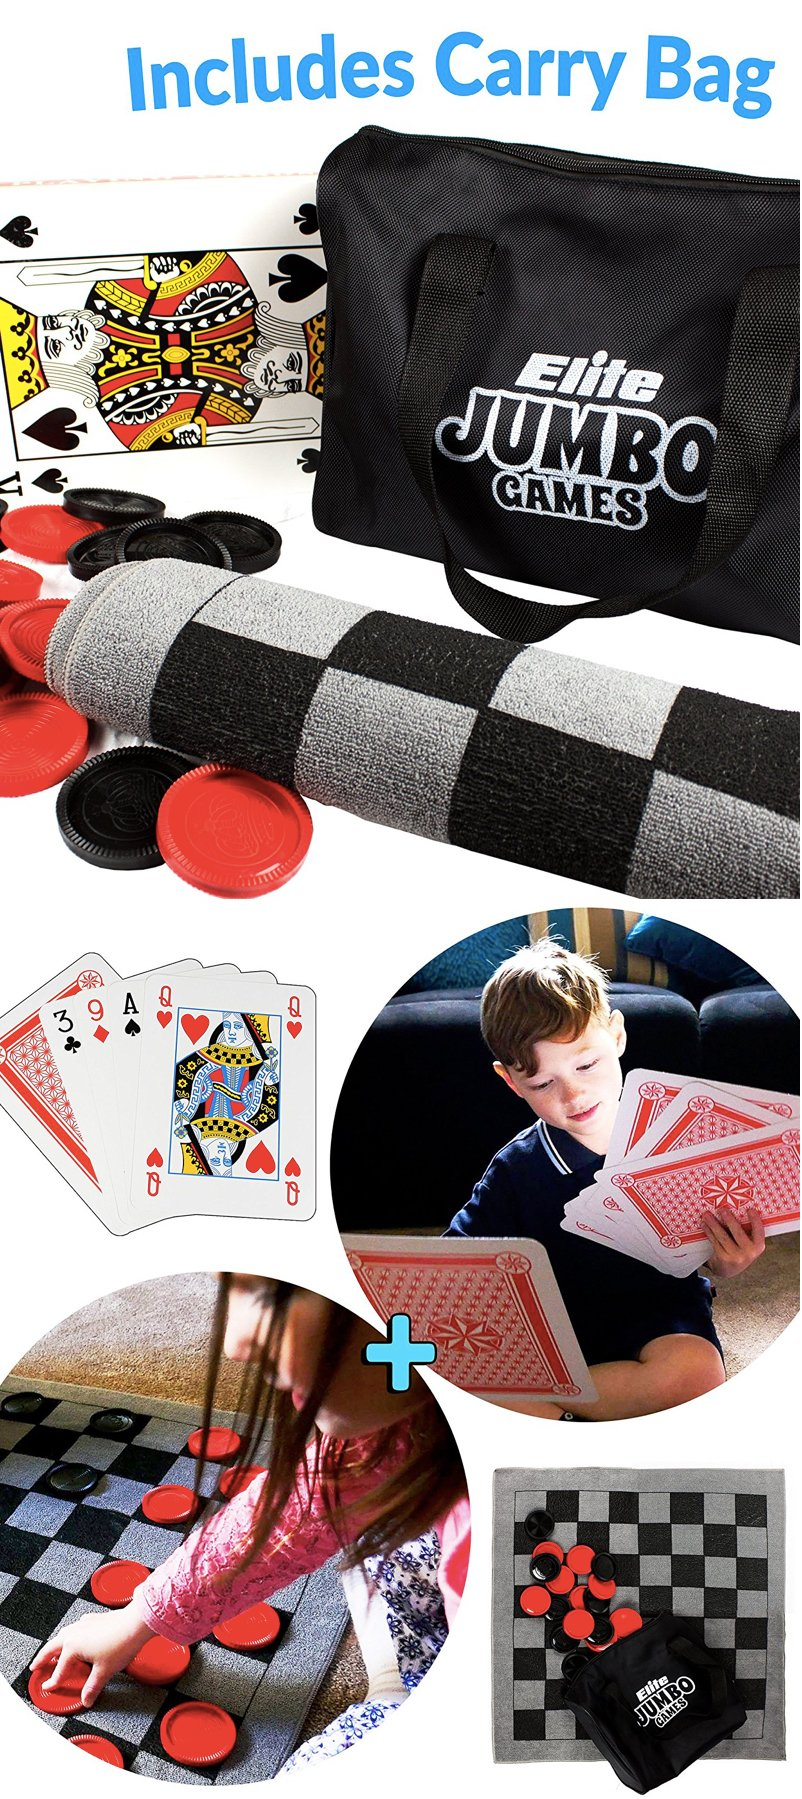 Large Playing Cards, Jumbo Checker Rug Game and Tic Tac Toe all in 1 Game Bag with Carrying Case